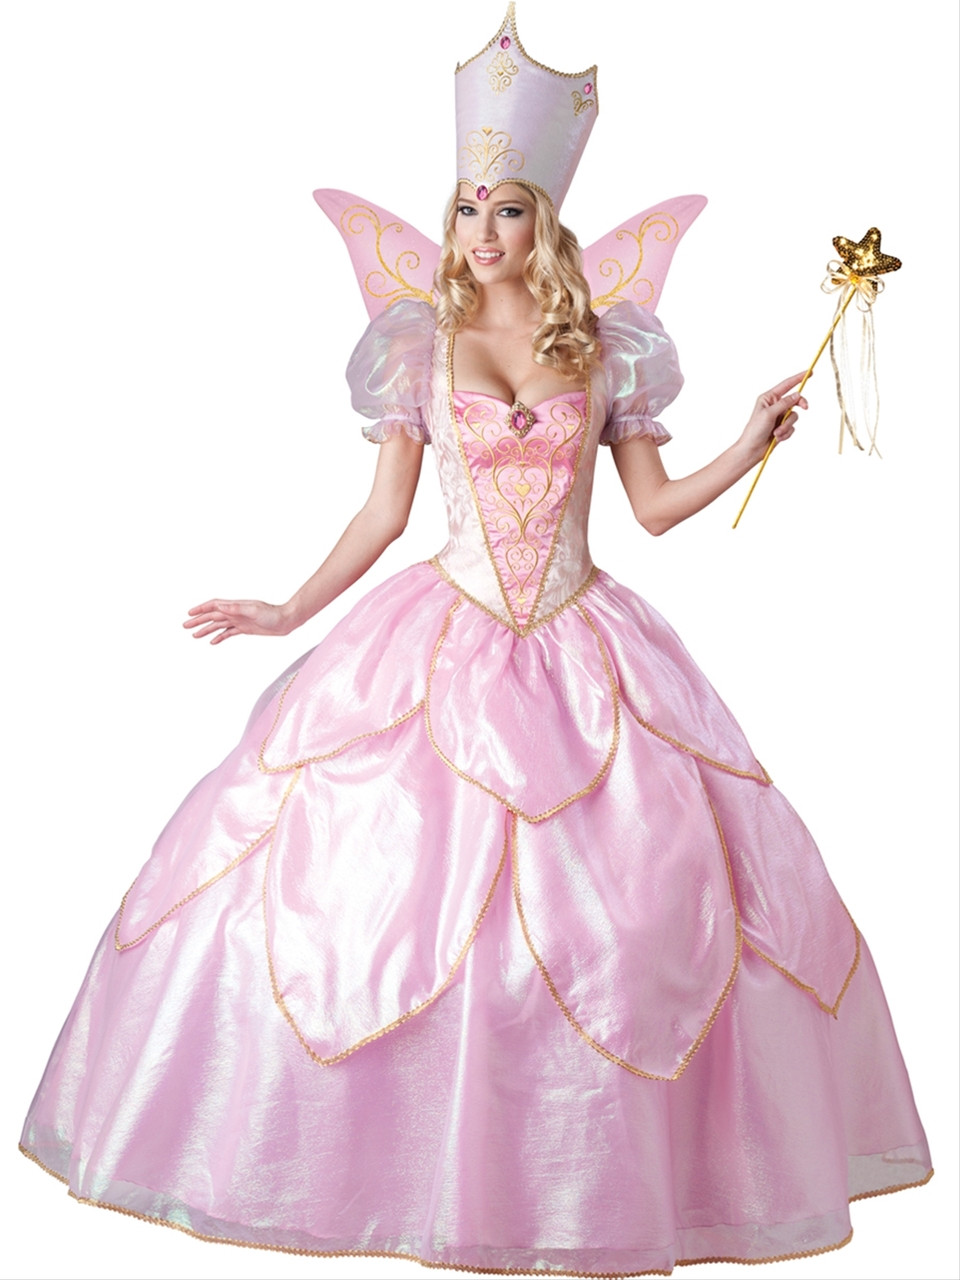 Sugar Plum Fairy Godmother Costume  sc 1 st  The Costume Shoppe & Sugar Plum Fairy Godmother Costume - The Costume Shoppe